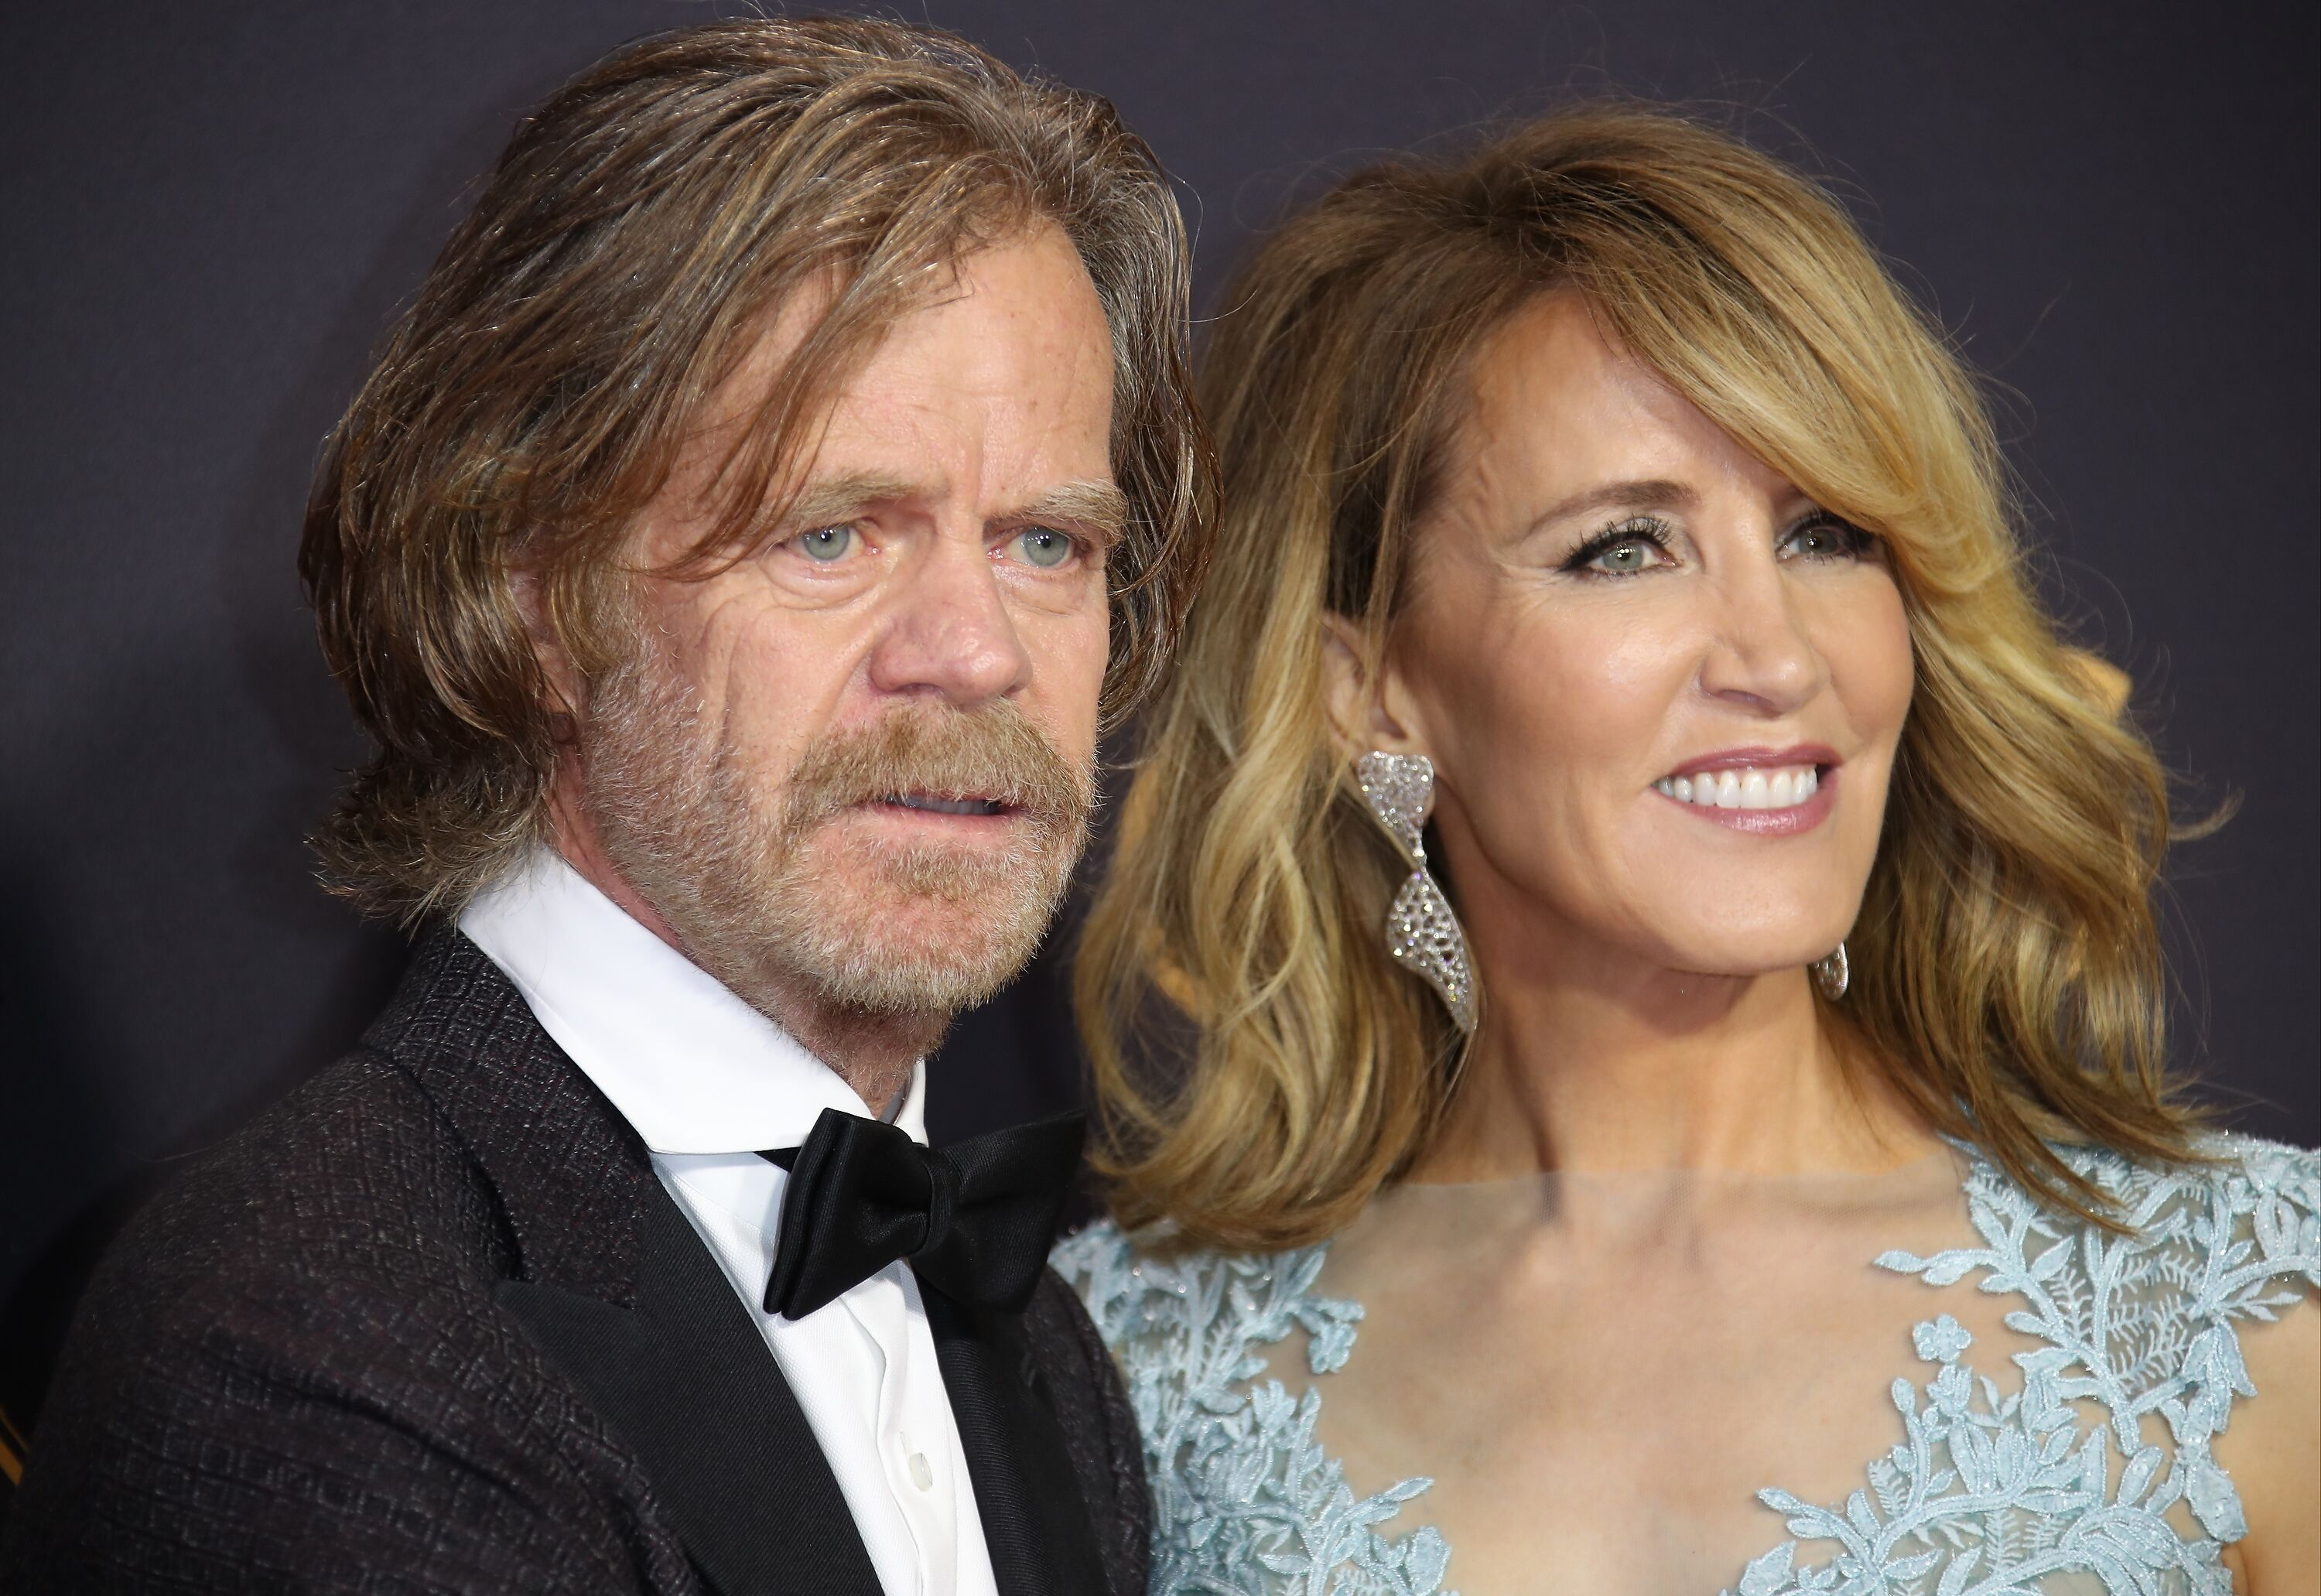 William H. Macy and Felicity Huffman at the 69th Annual Primetime Emmy Awards on September 17, 2017, in Los Angeles, California | Photo: Dan MacMedan/Getty Images